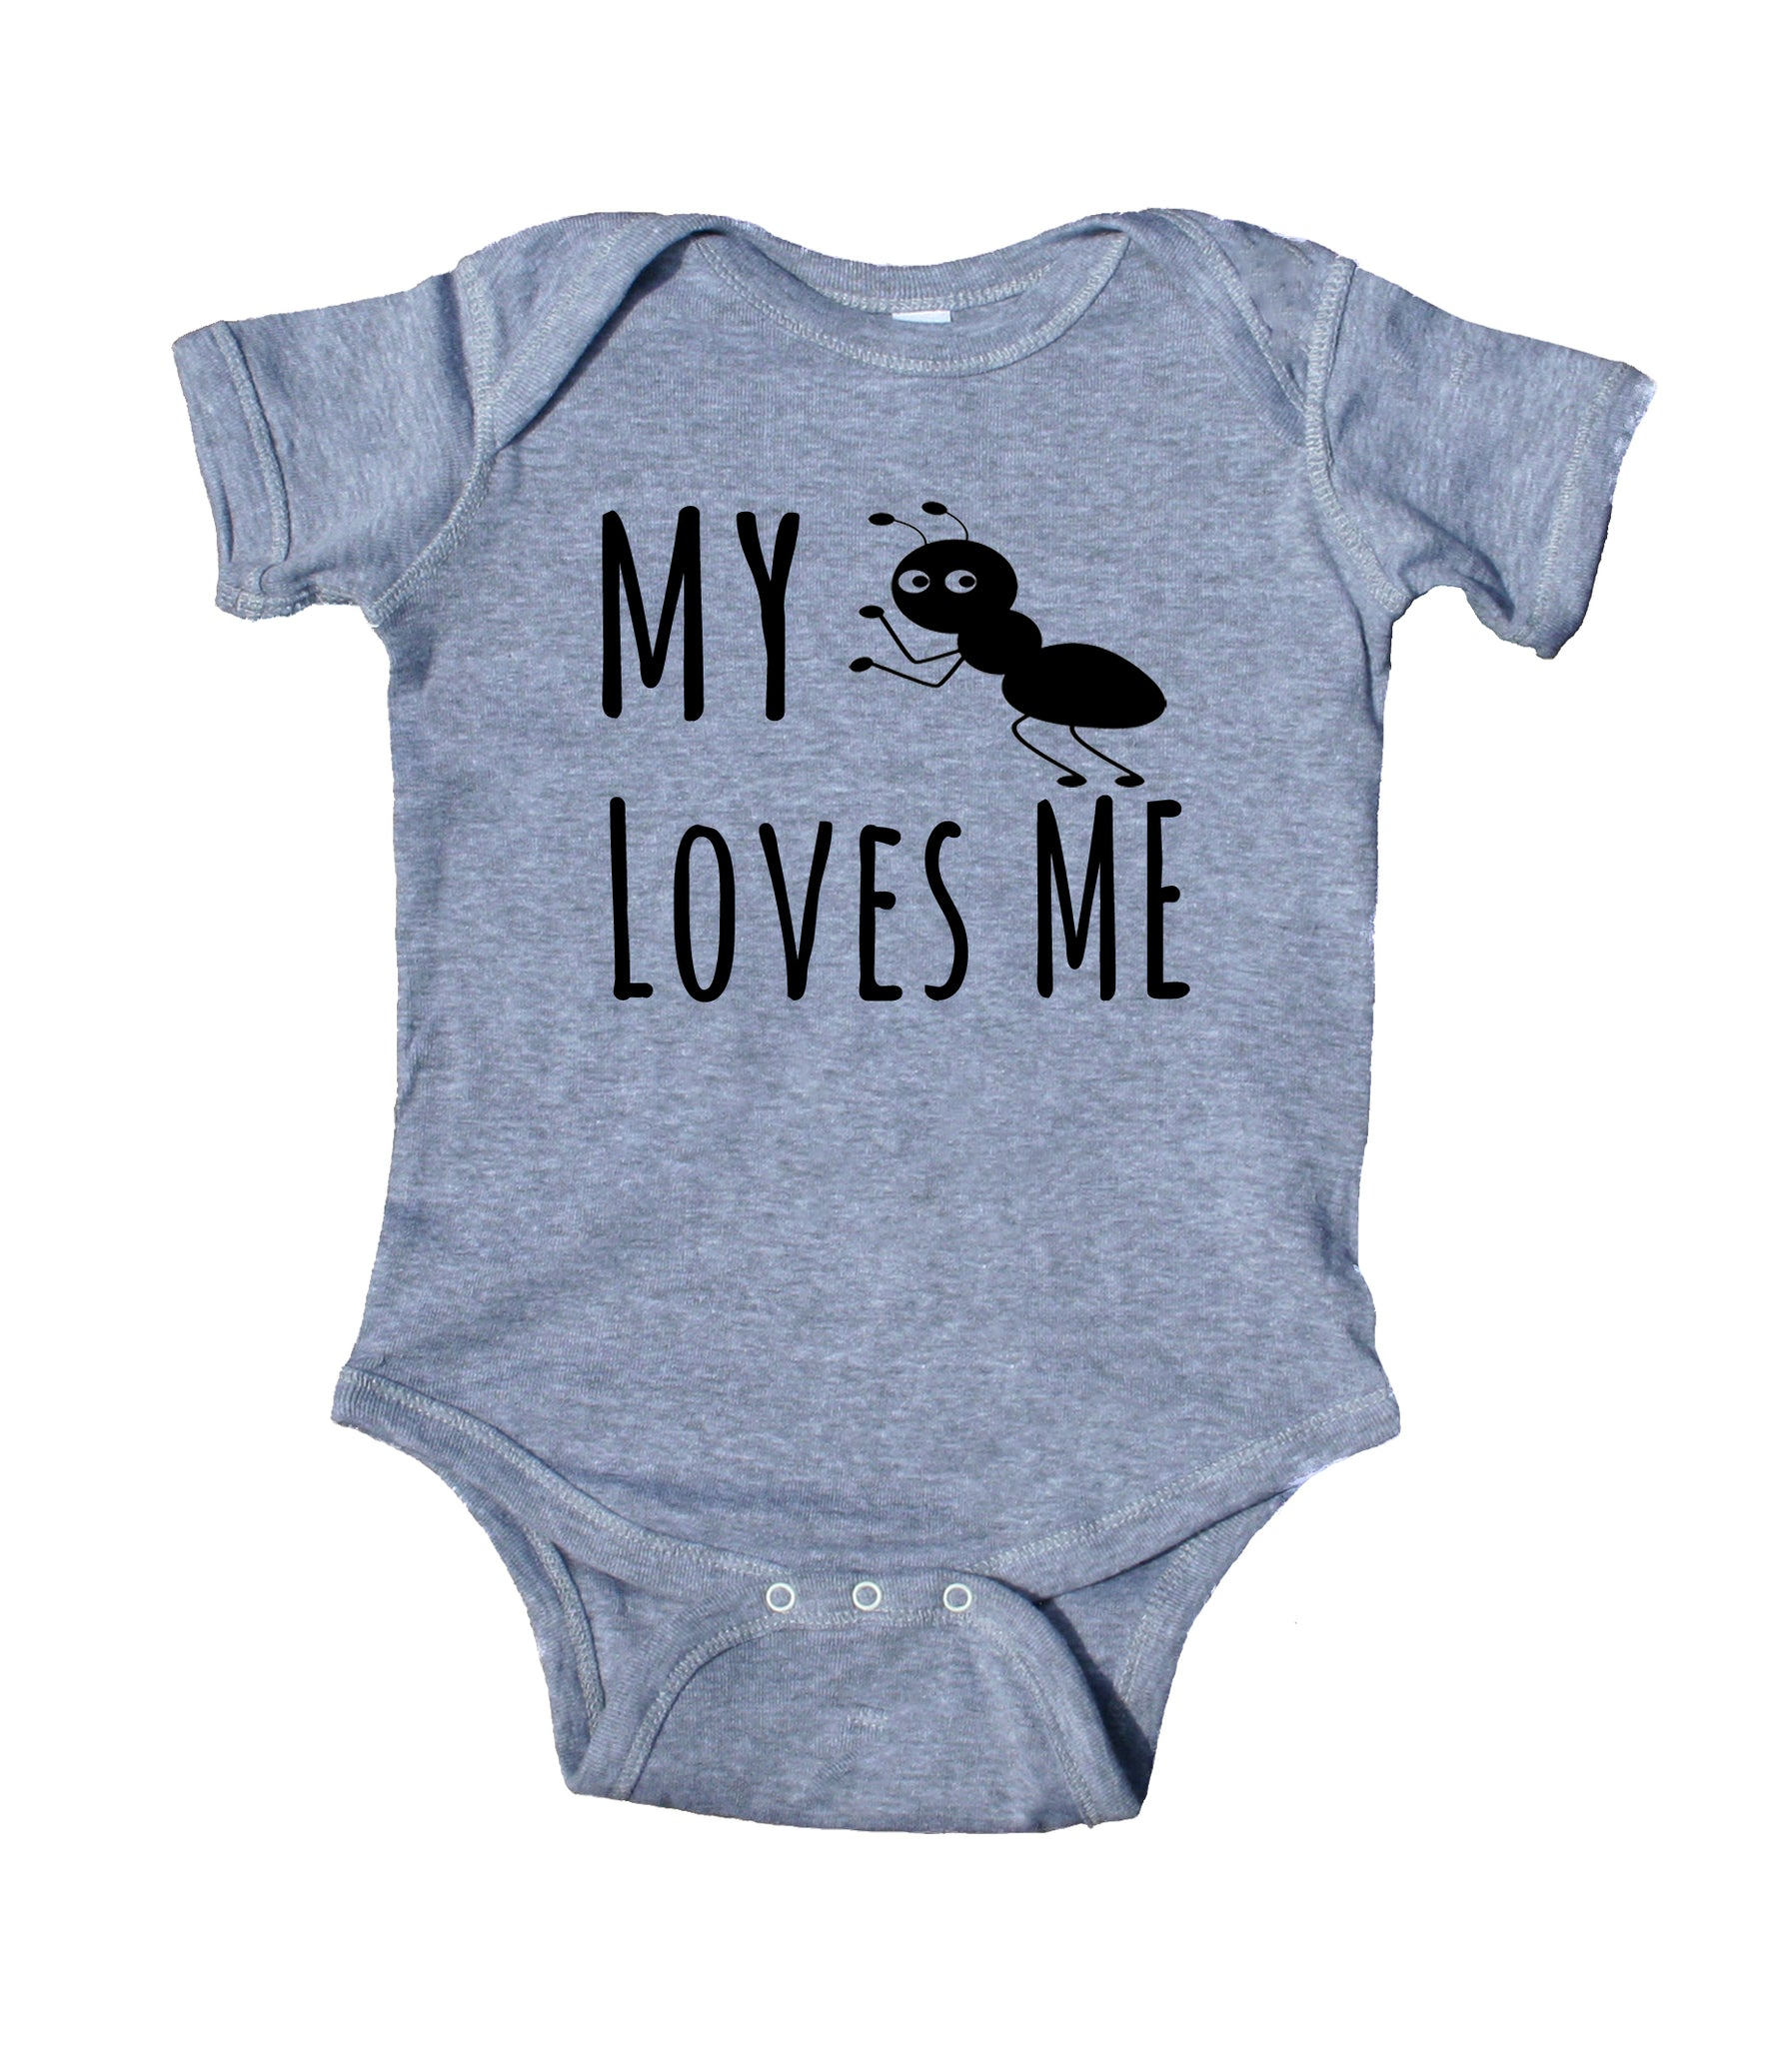 25a97988a ... My Aunt Loves Me Baby Bodysuit Funny Cute Baby Infant Girl Boy Birthday  Shower Gift Clothing